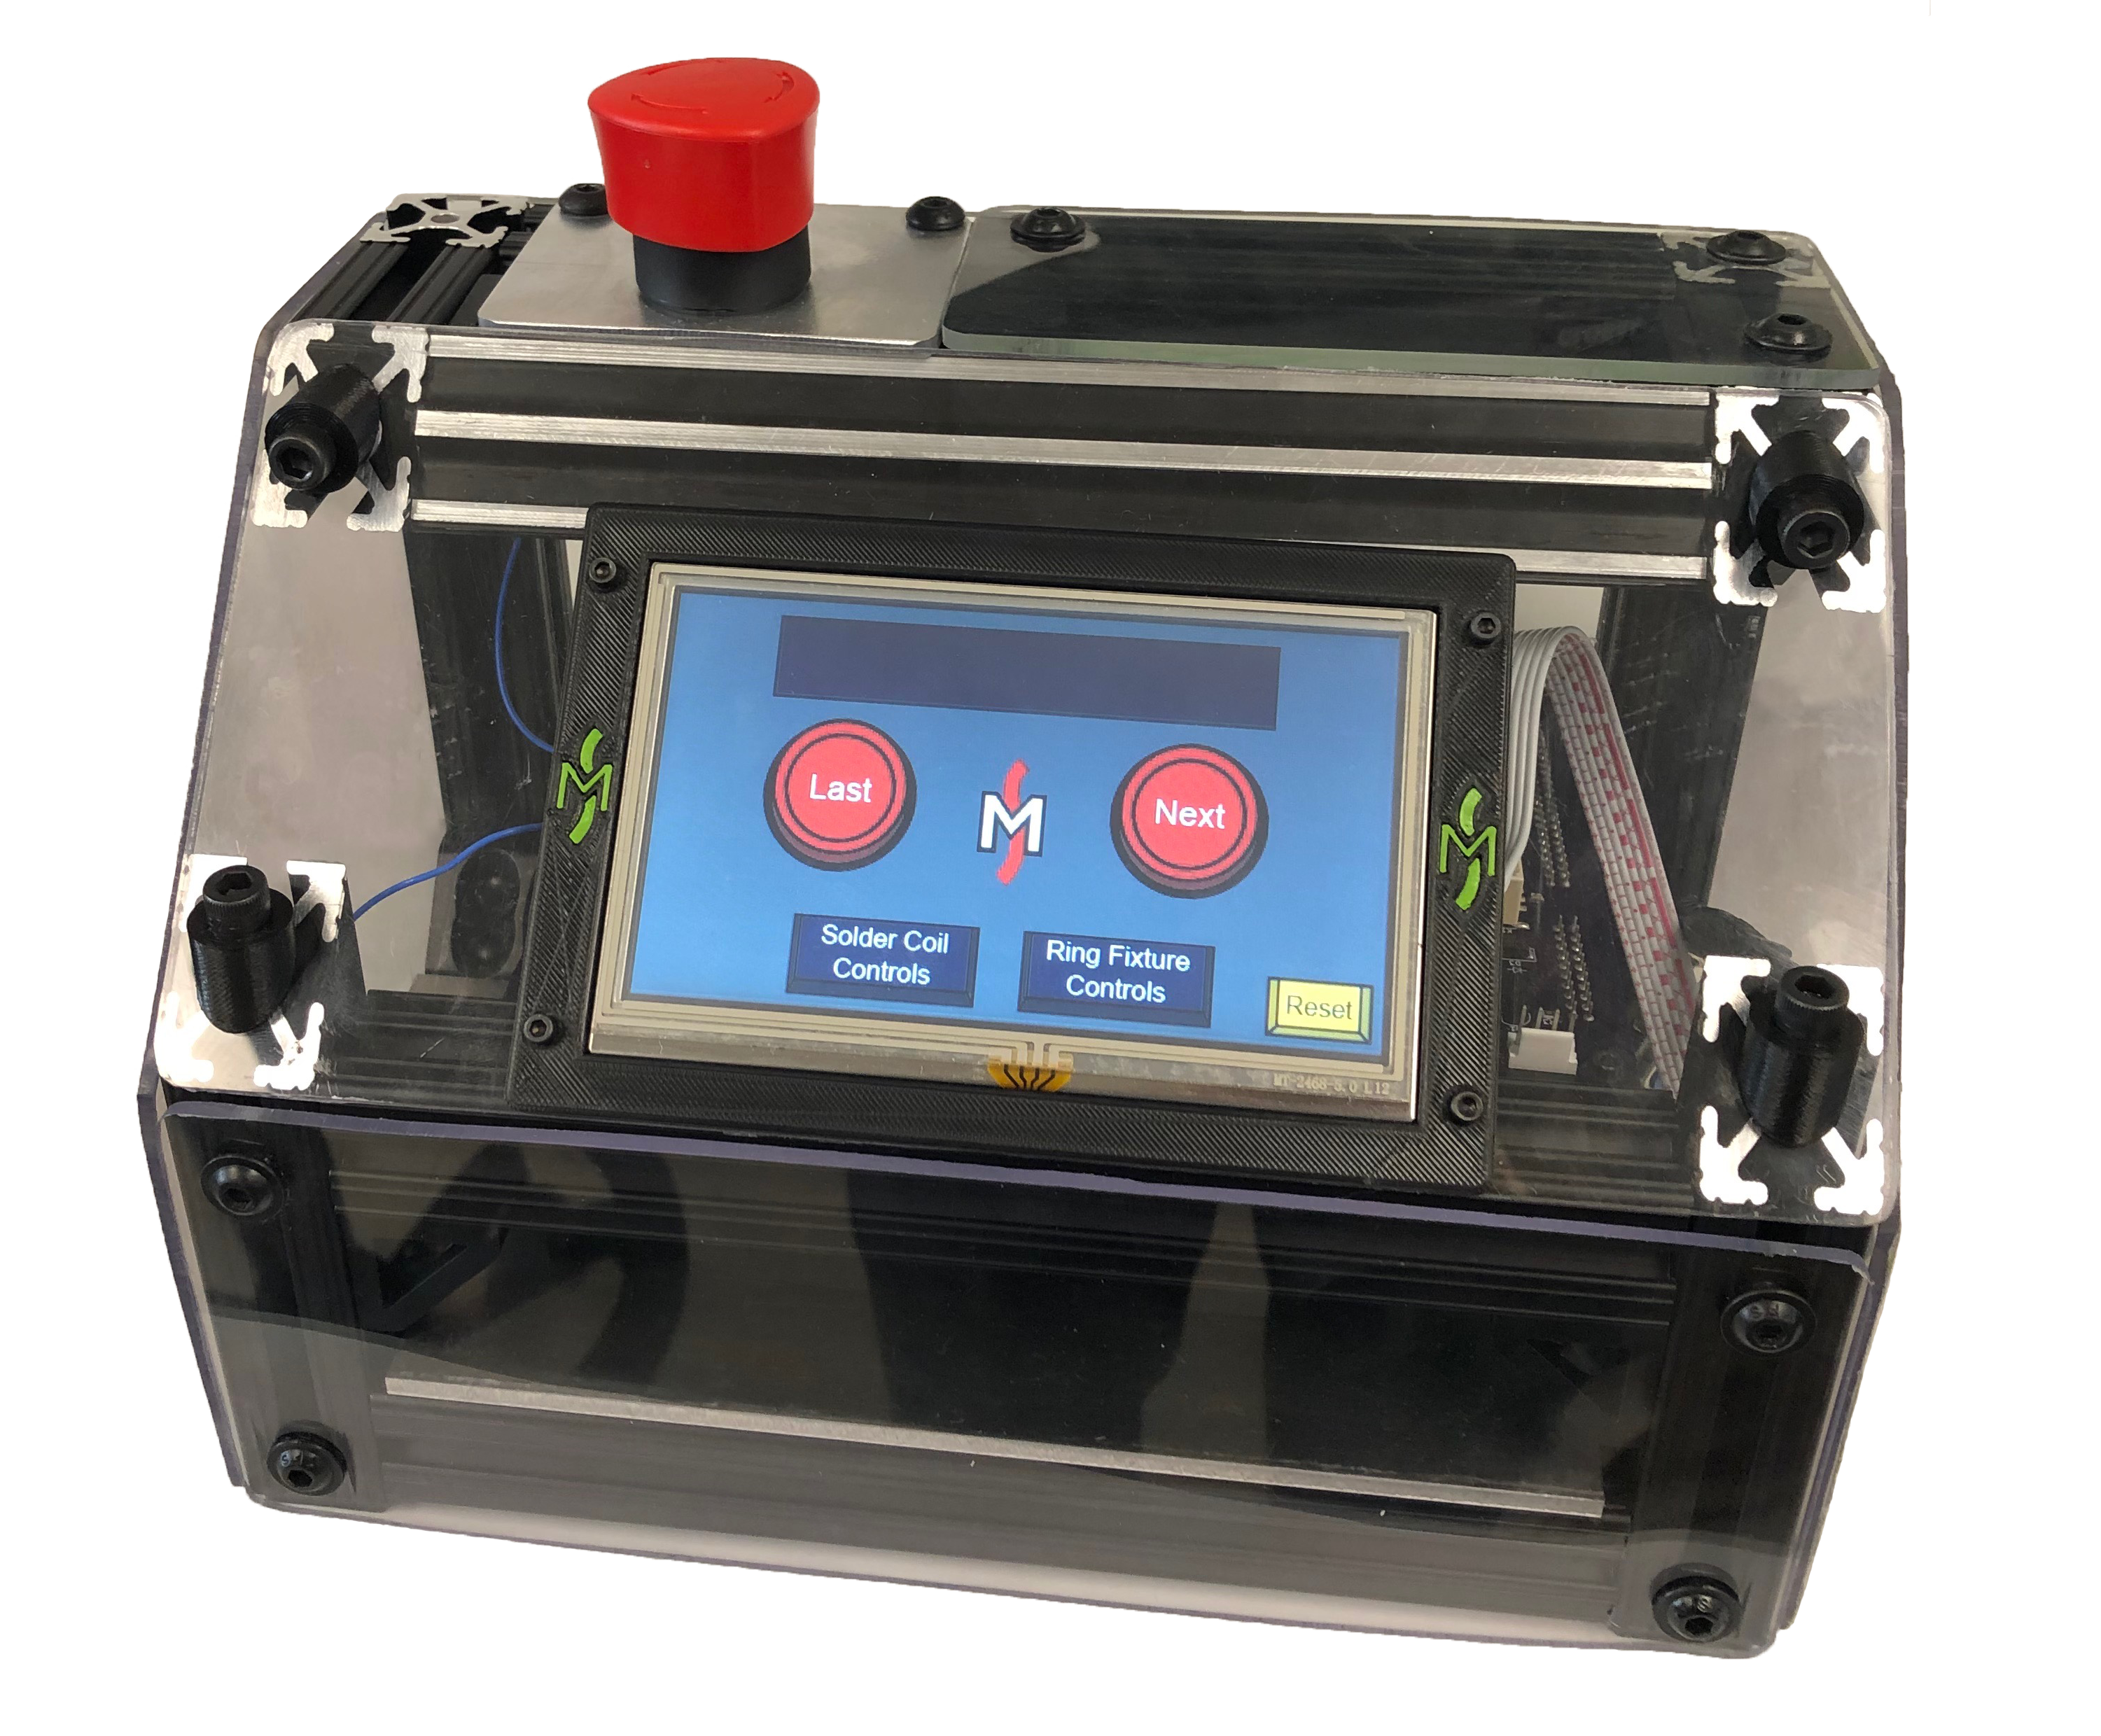 Control Box with Touch Screen